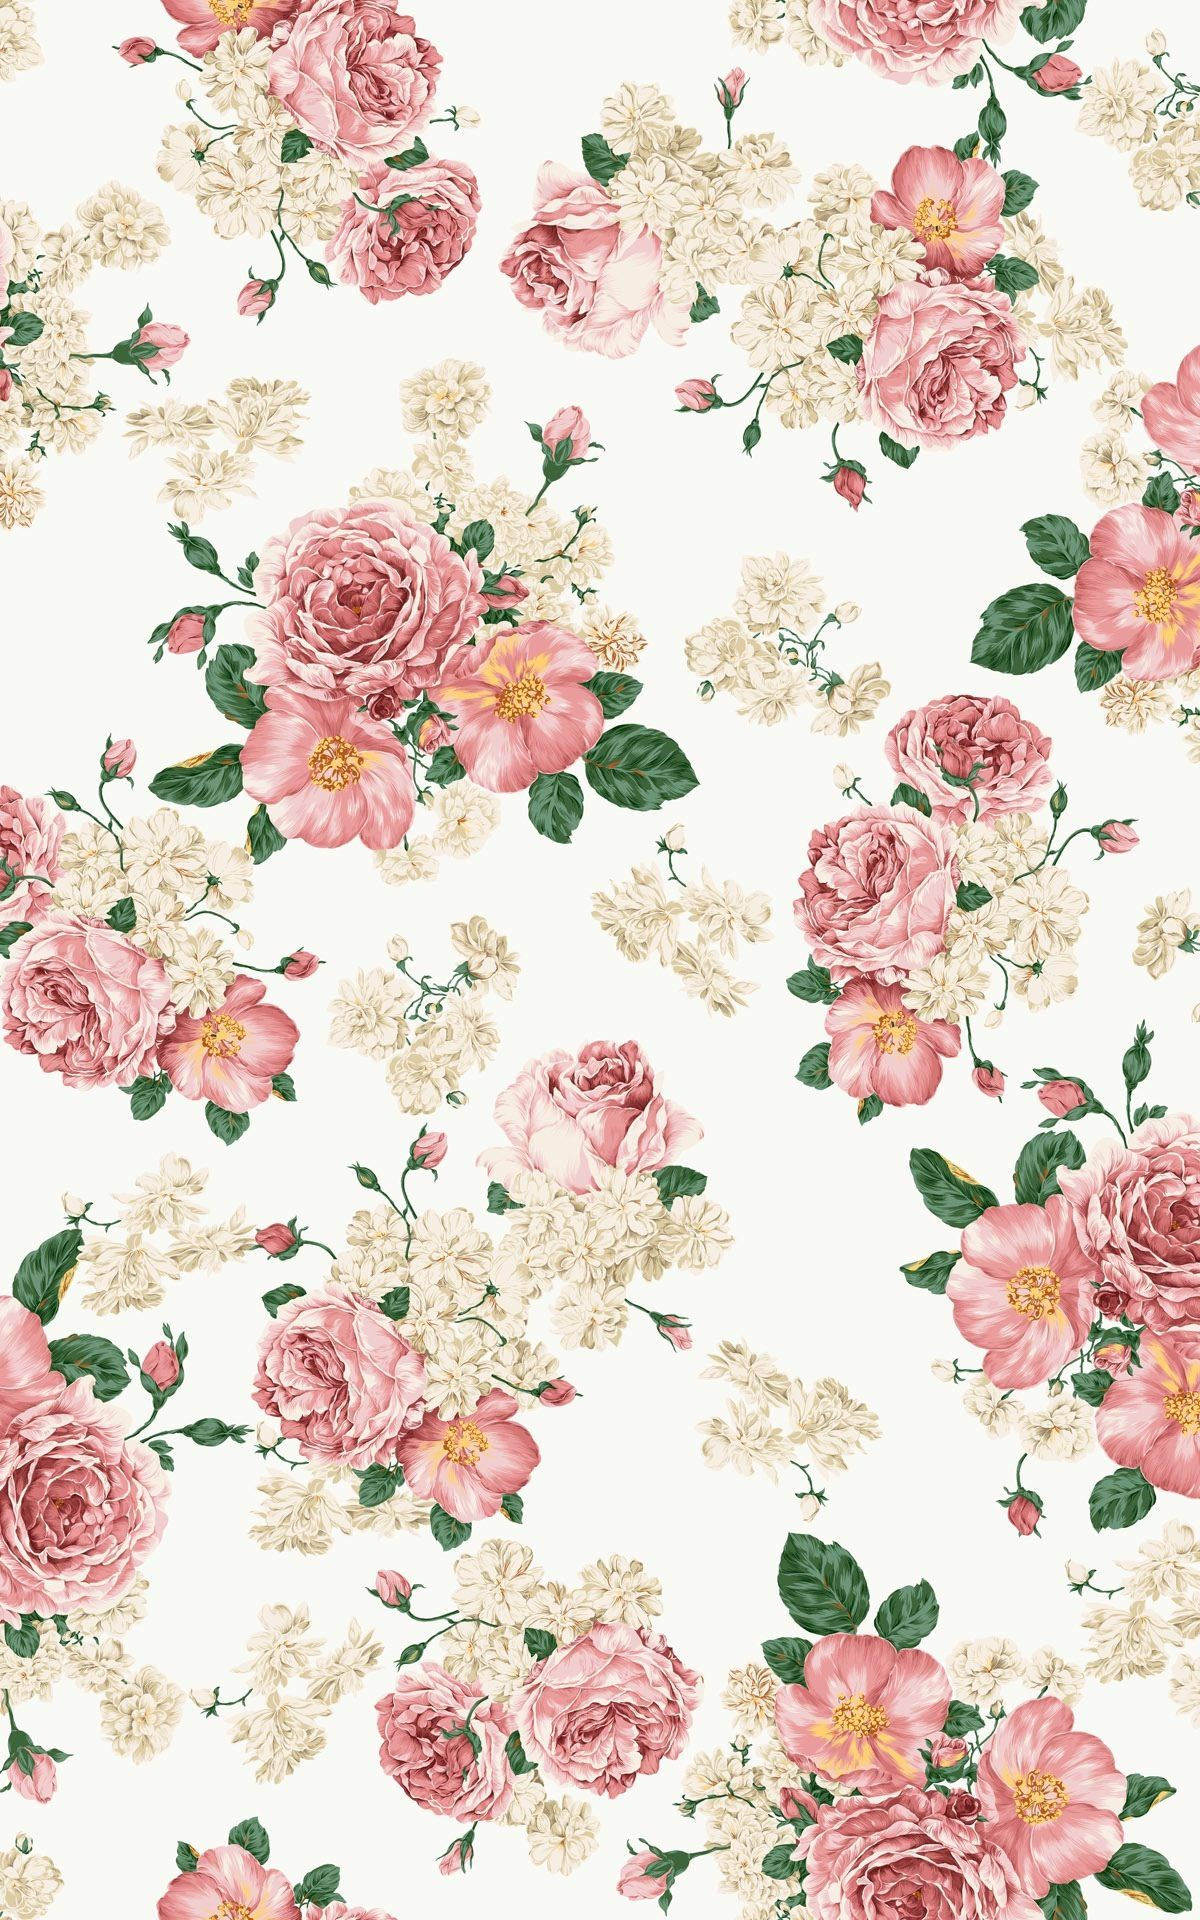 High Res Vintage Pink Flower Wallpaper Fondo de pantalla